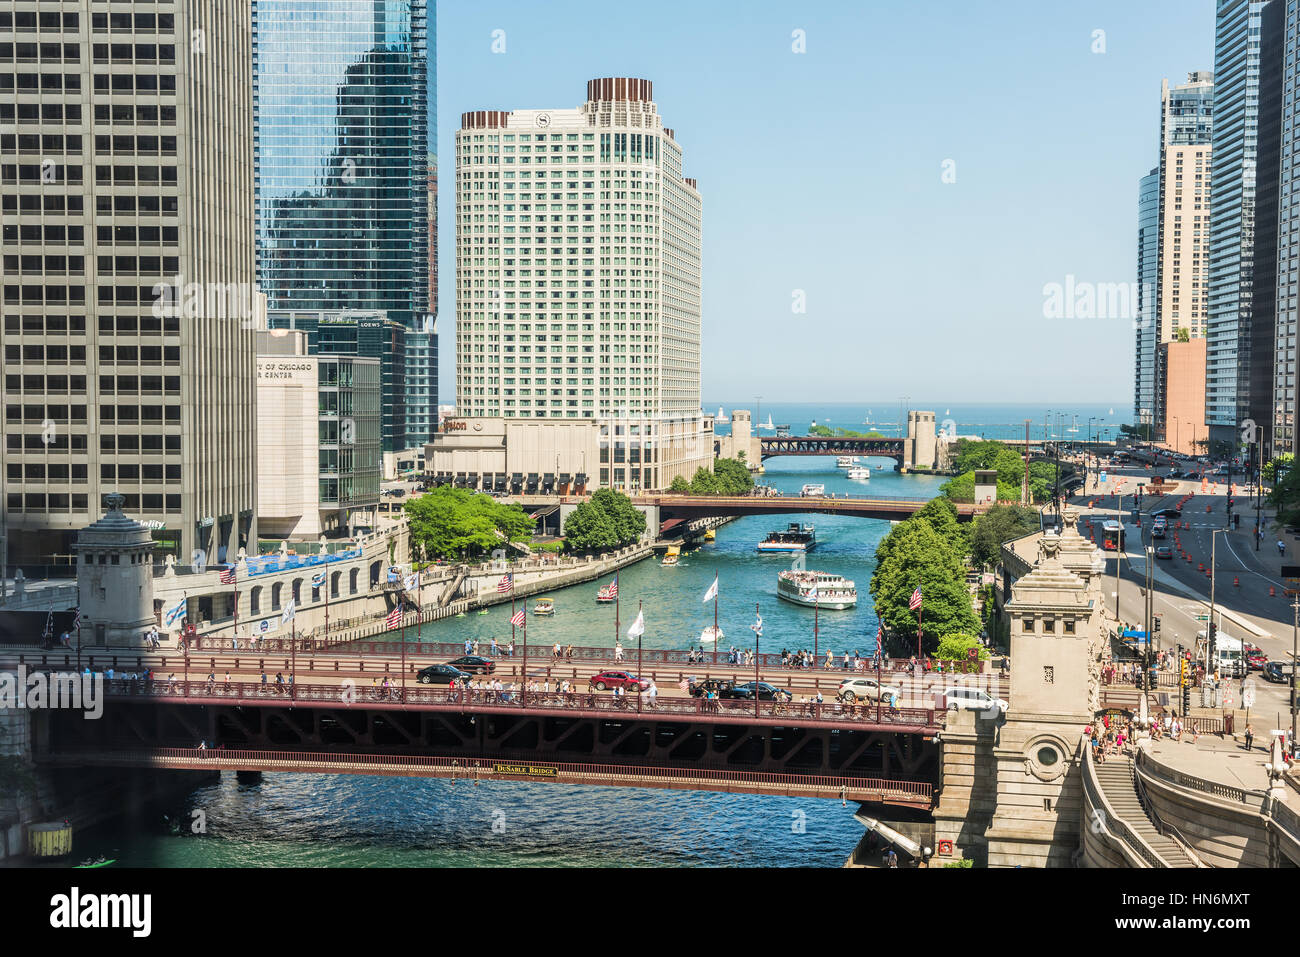 Chicago, USA - May 30, 2016: Aerial view of Lake Michigan, DuSable bridge and Wacker Drive with many skyscrapers, - Stock Image